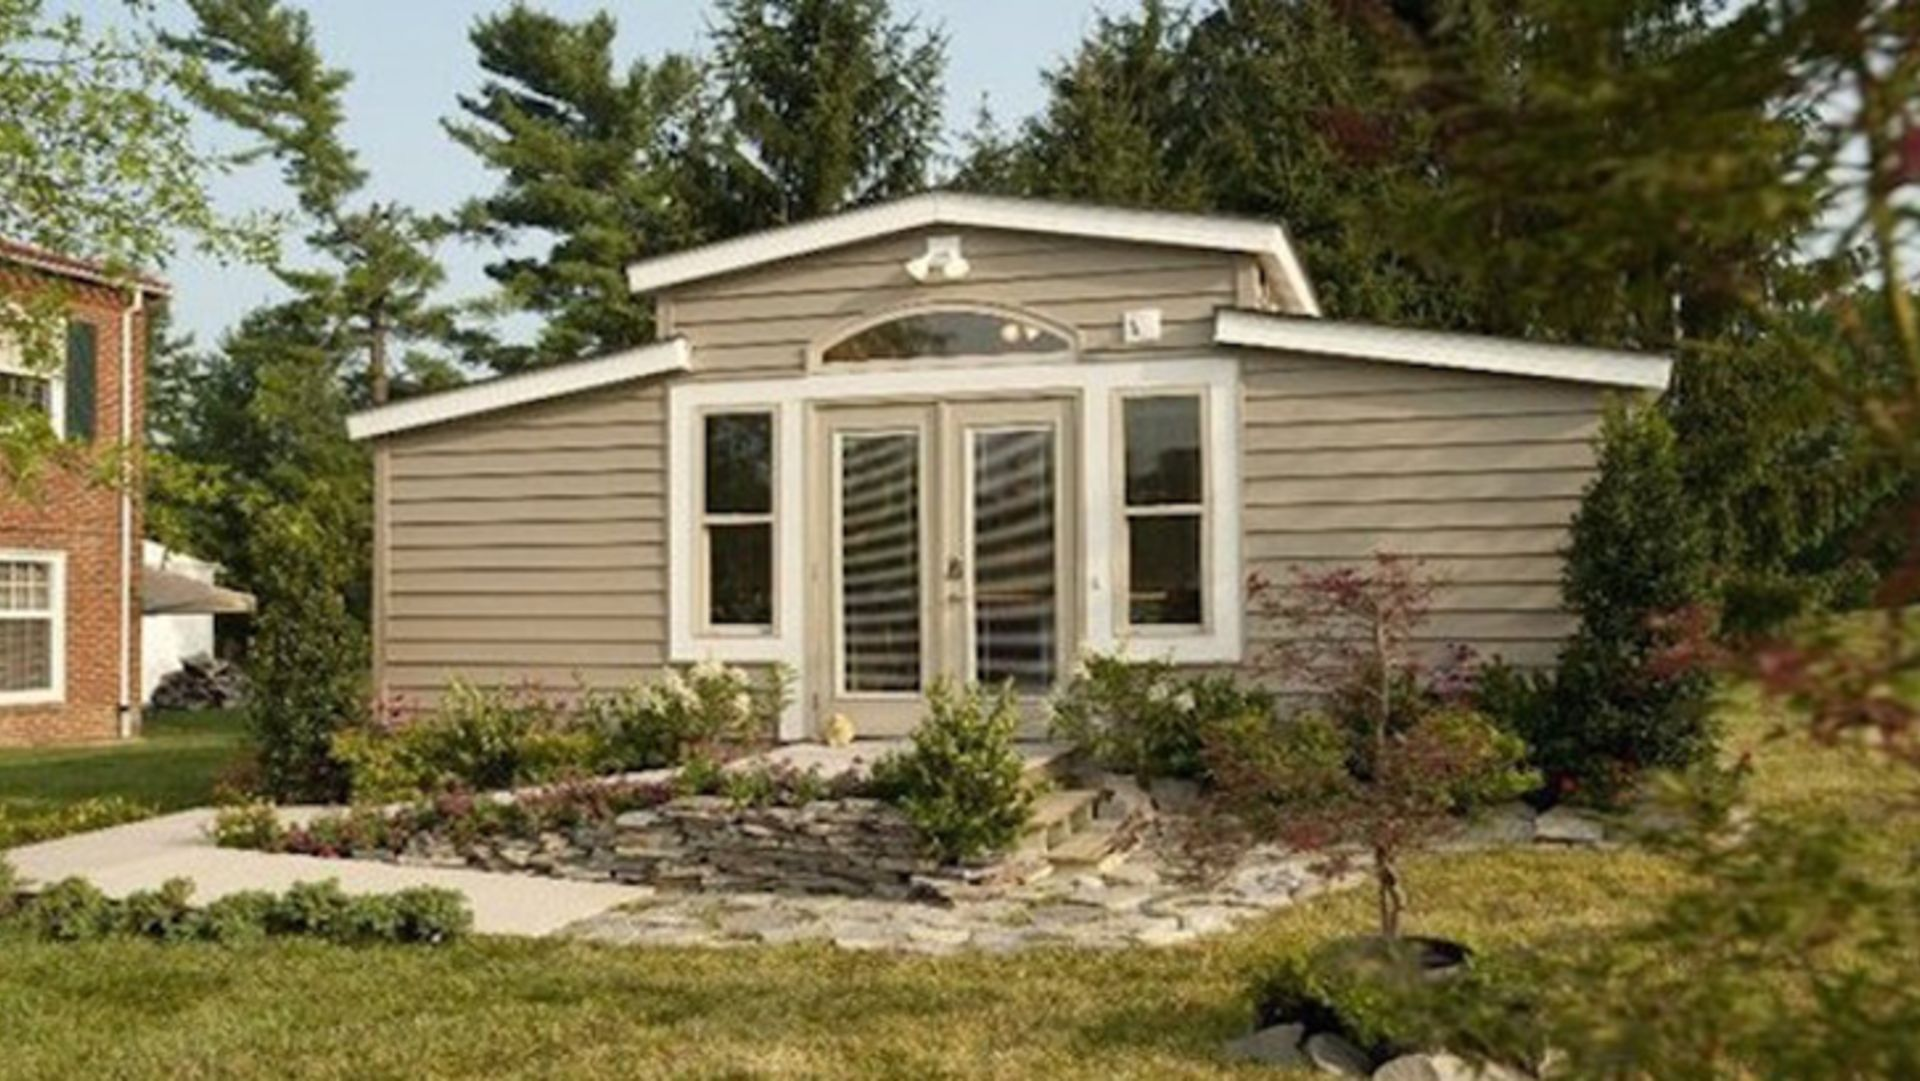 Granny Pods: Caring for Aging Relatives in Your Own Backyard